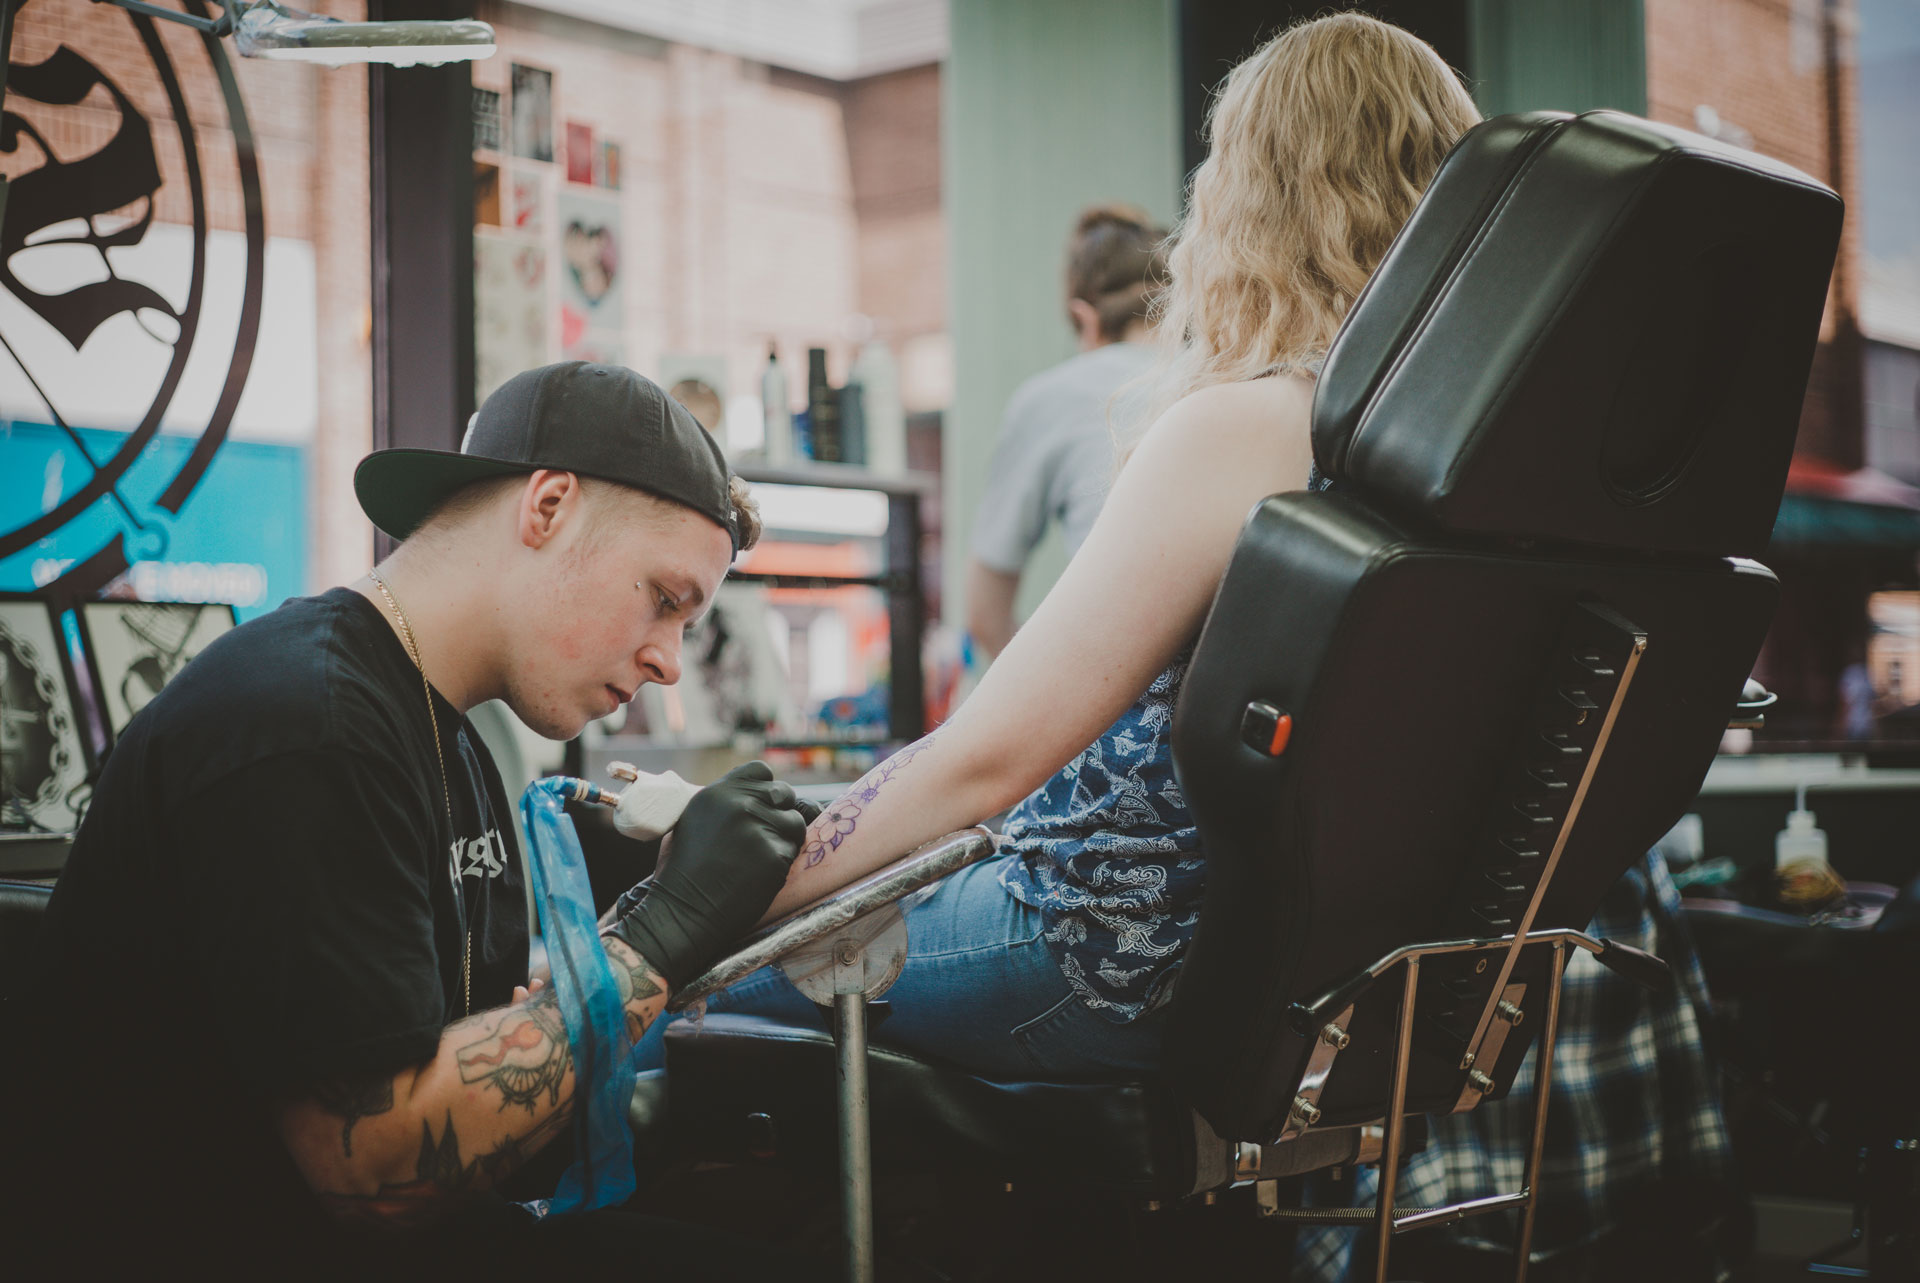 Lee Tattooing